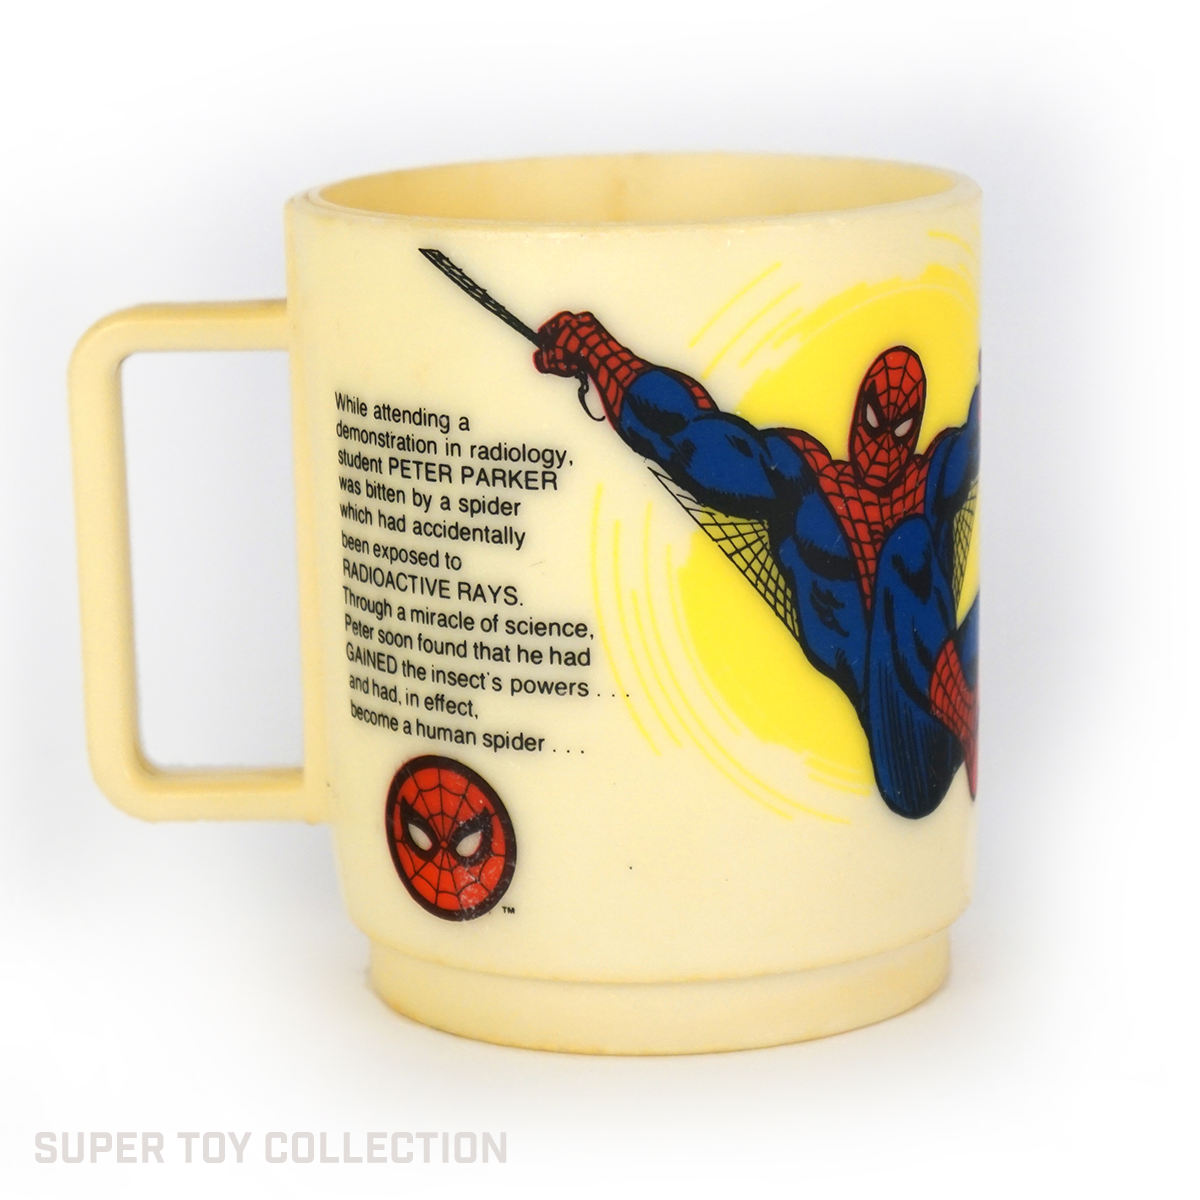 Spiderman cup